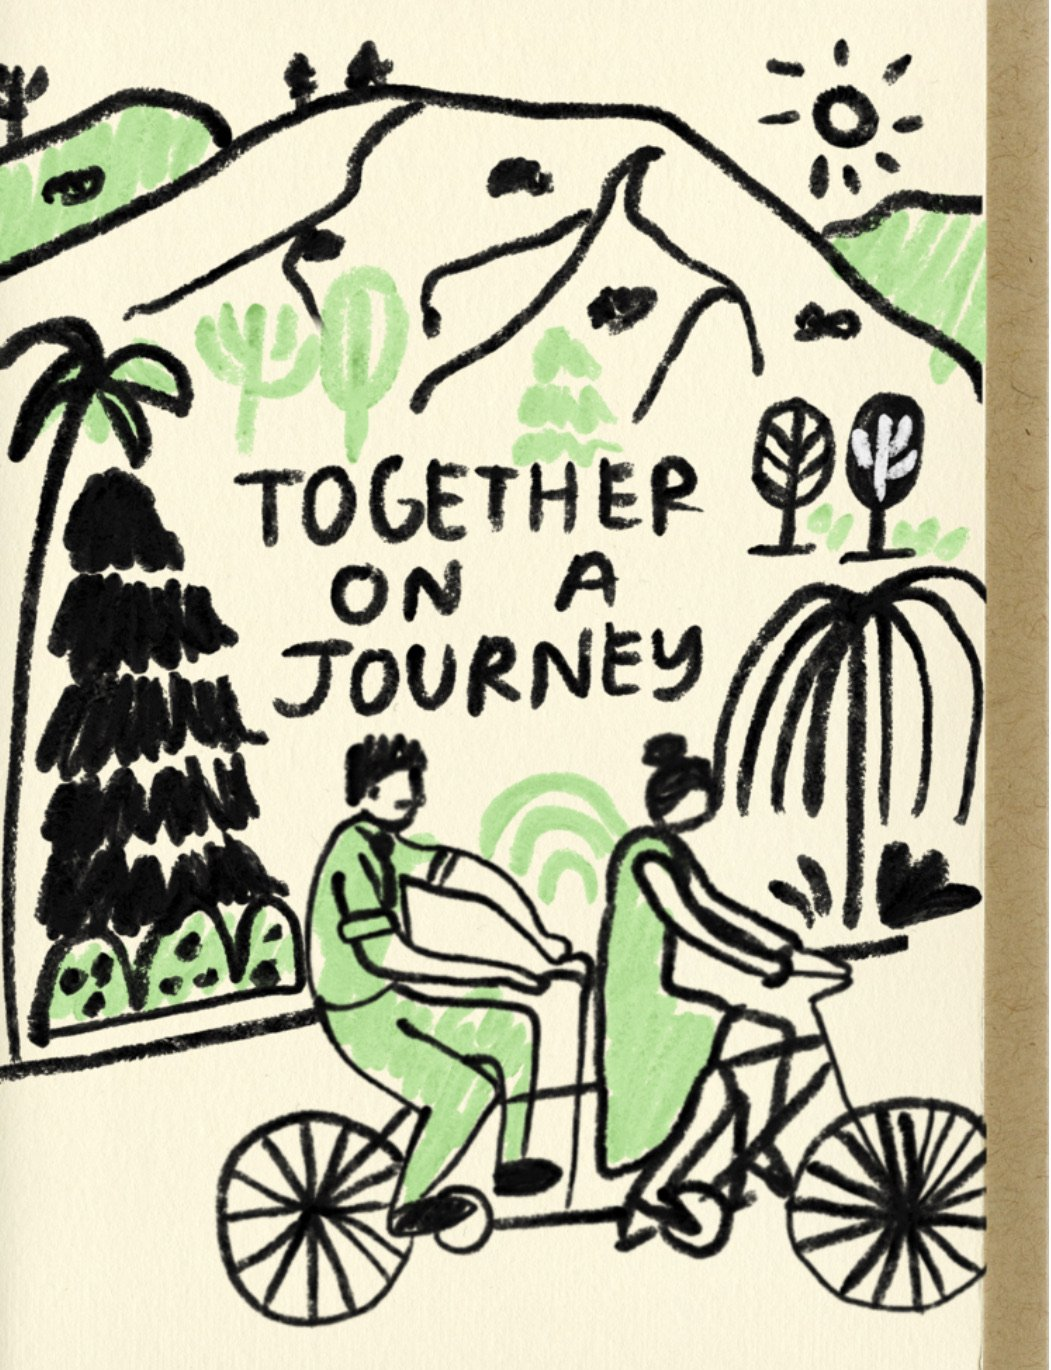 TOGETHER ON A JOURNEY CARD